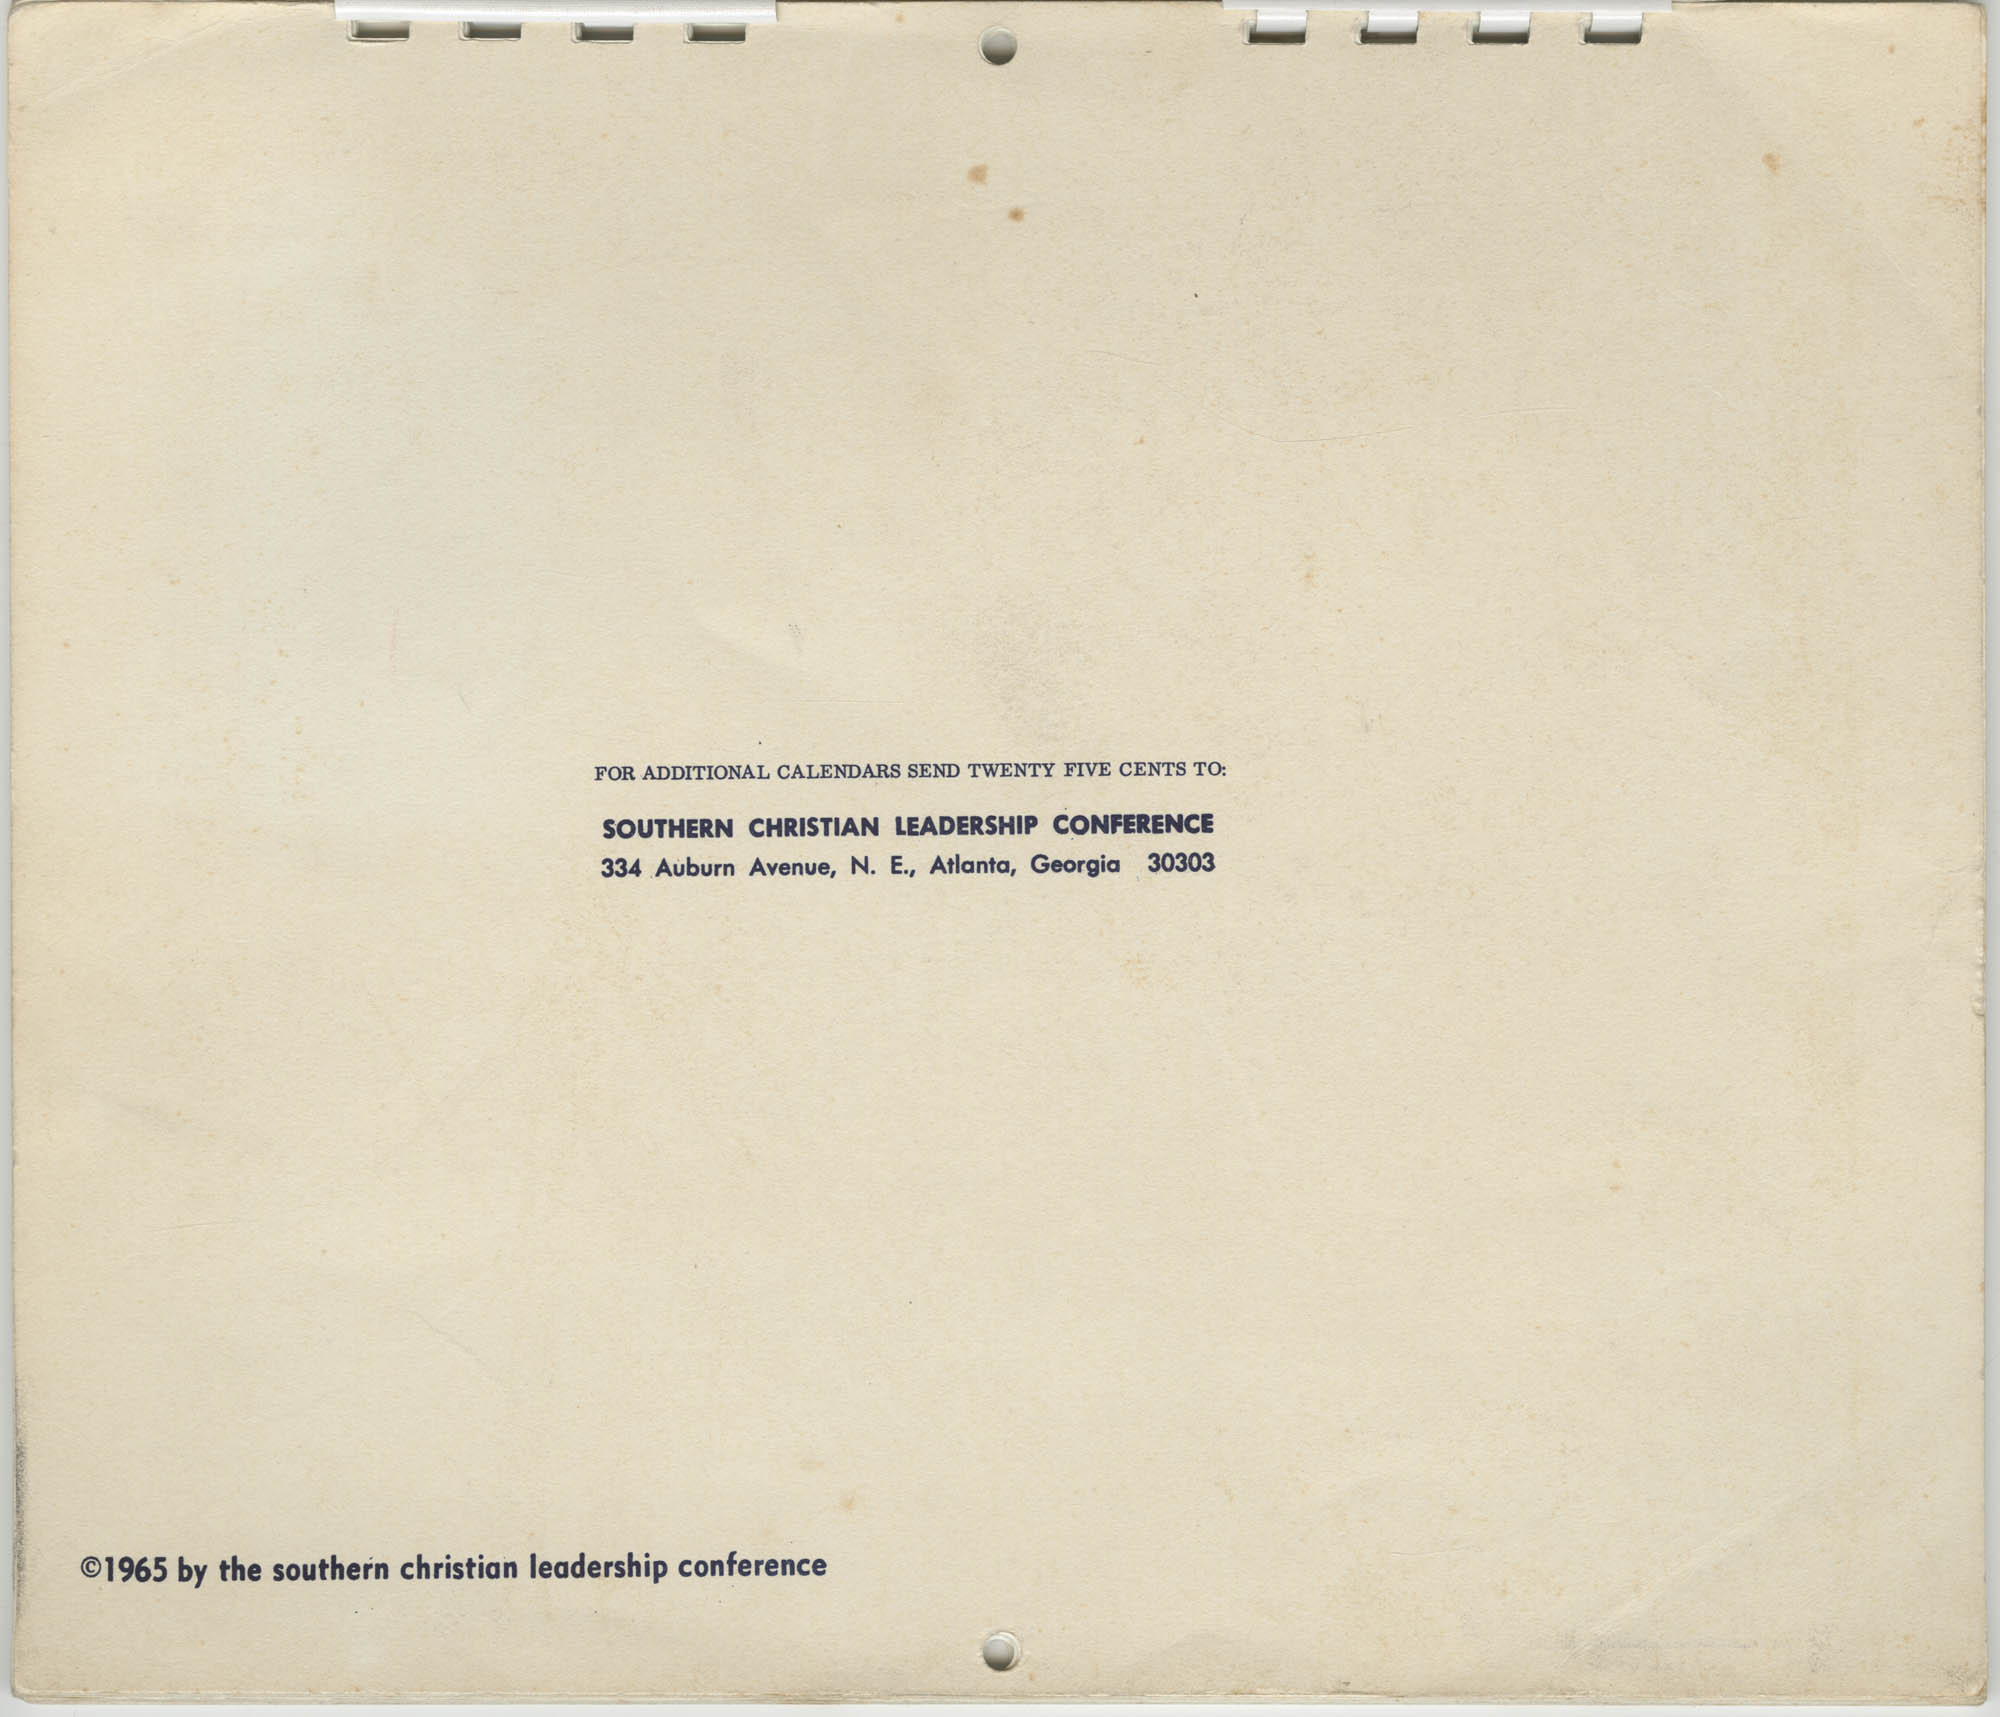 Southern Christian Leadership Conference Newsletter Calendar, 1965, Back Cover